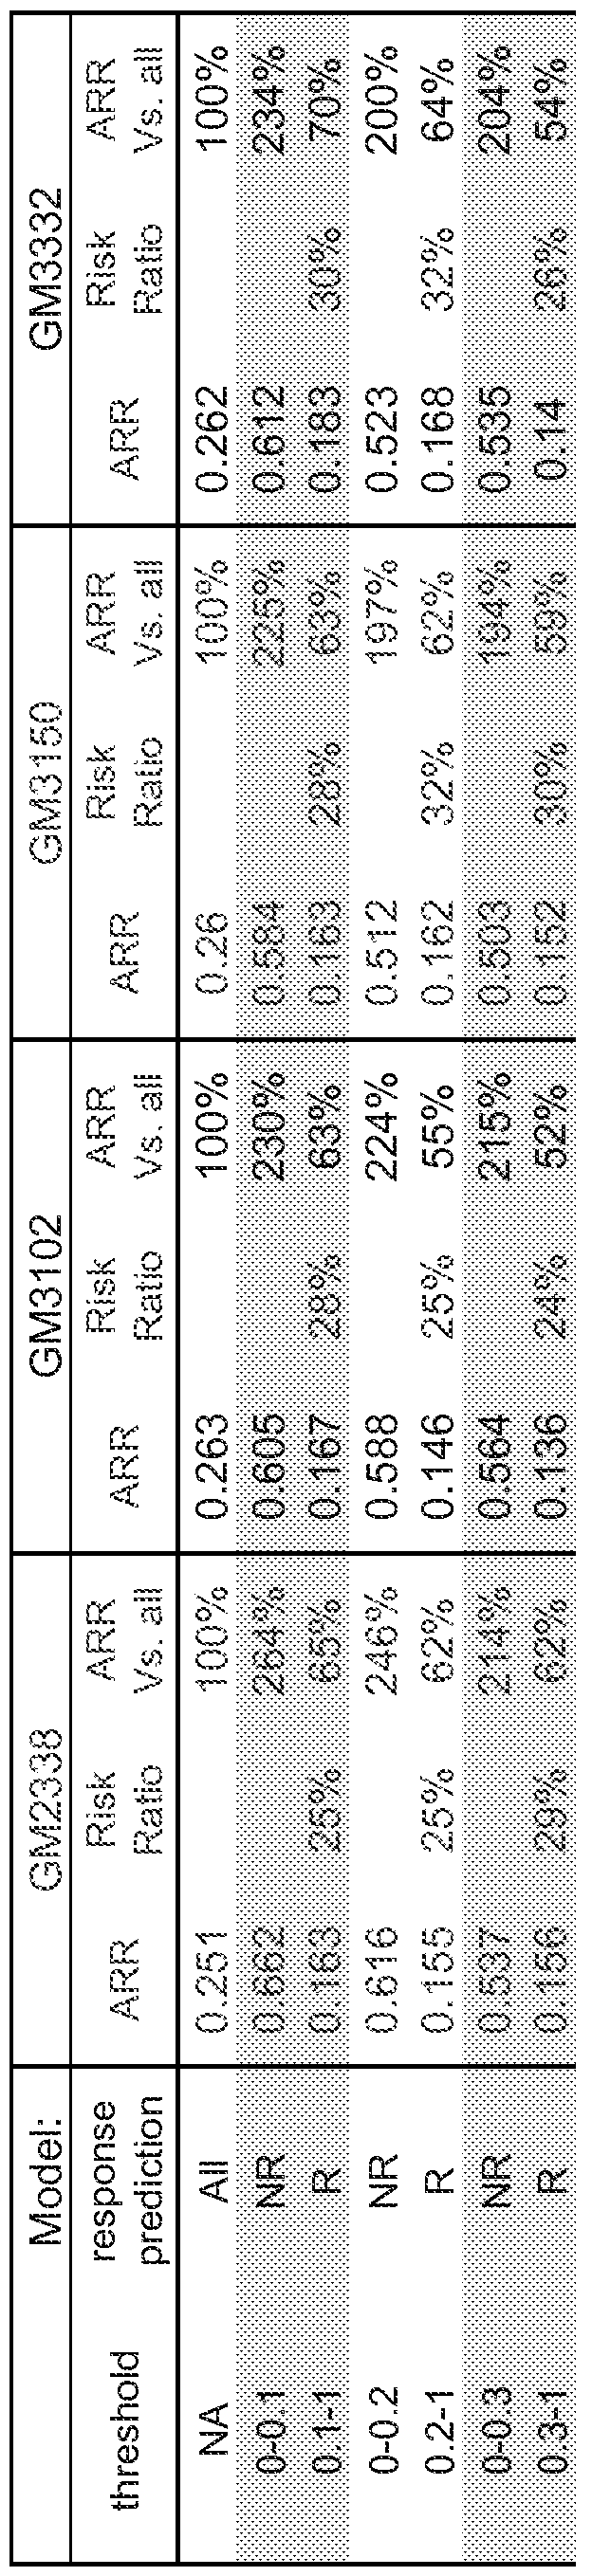 WO2013055683A1 - Single nucleotide polymorphisms useful to